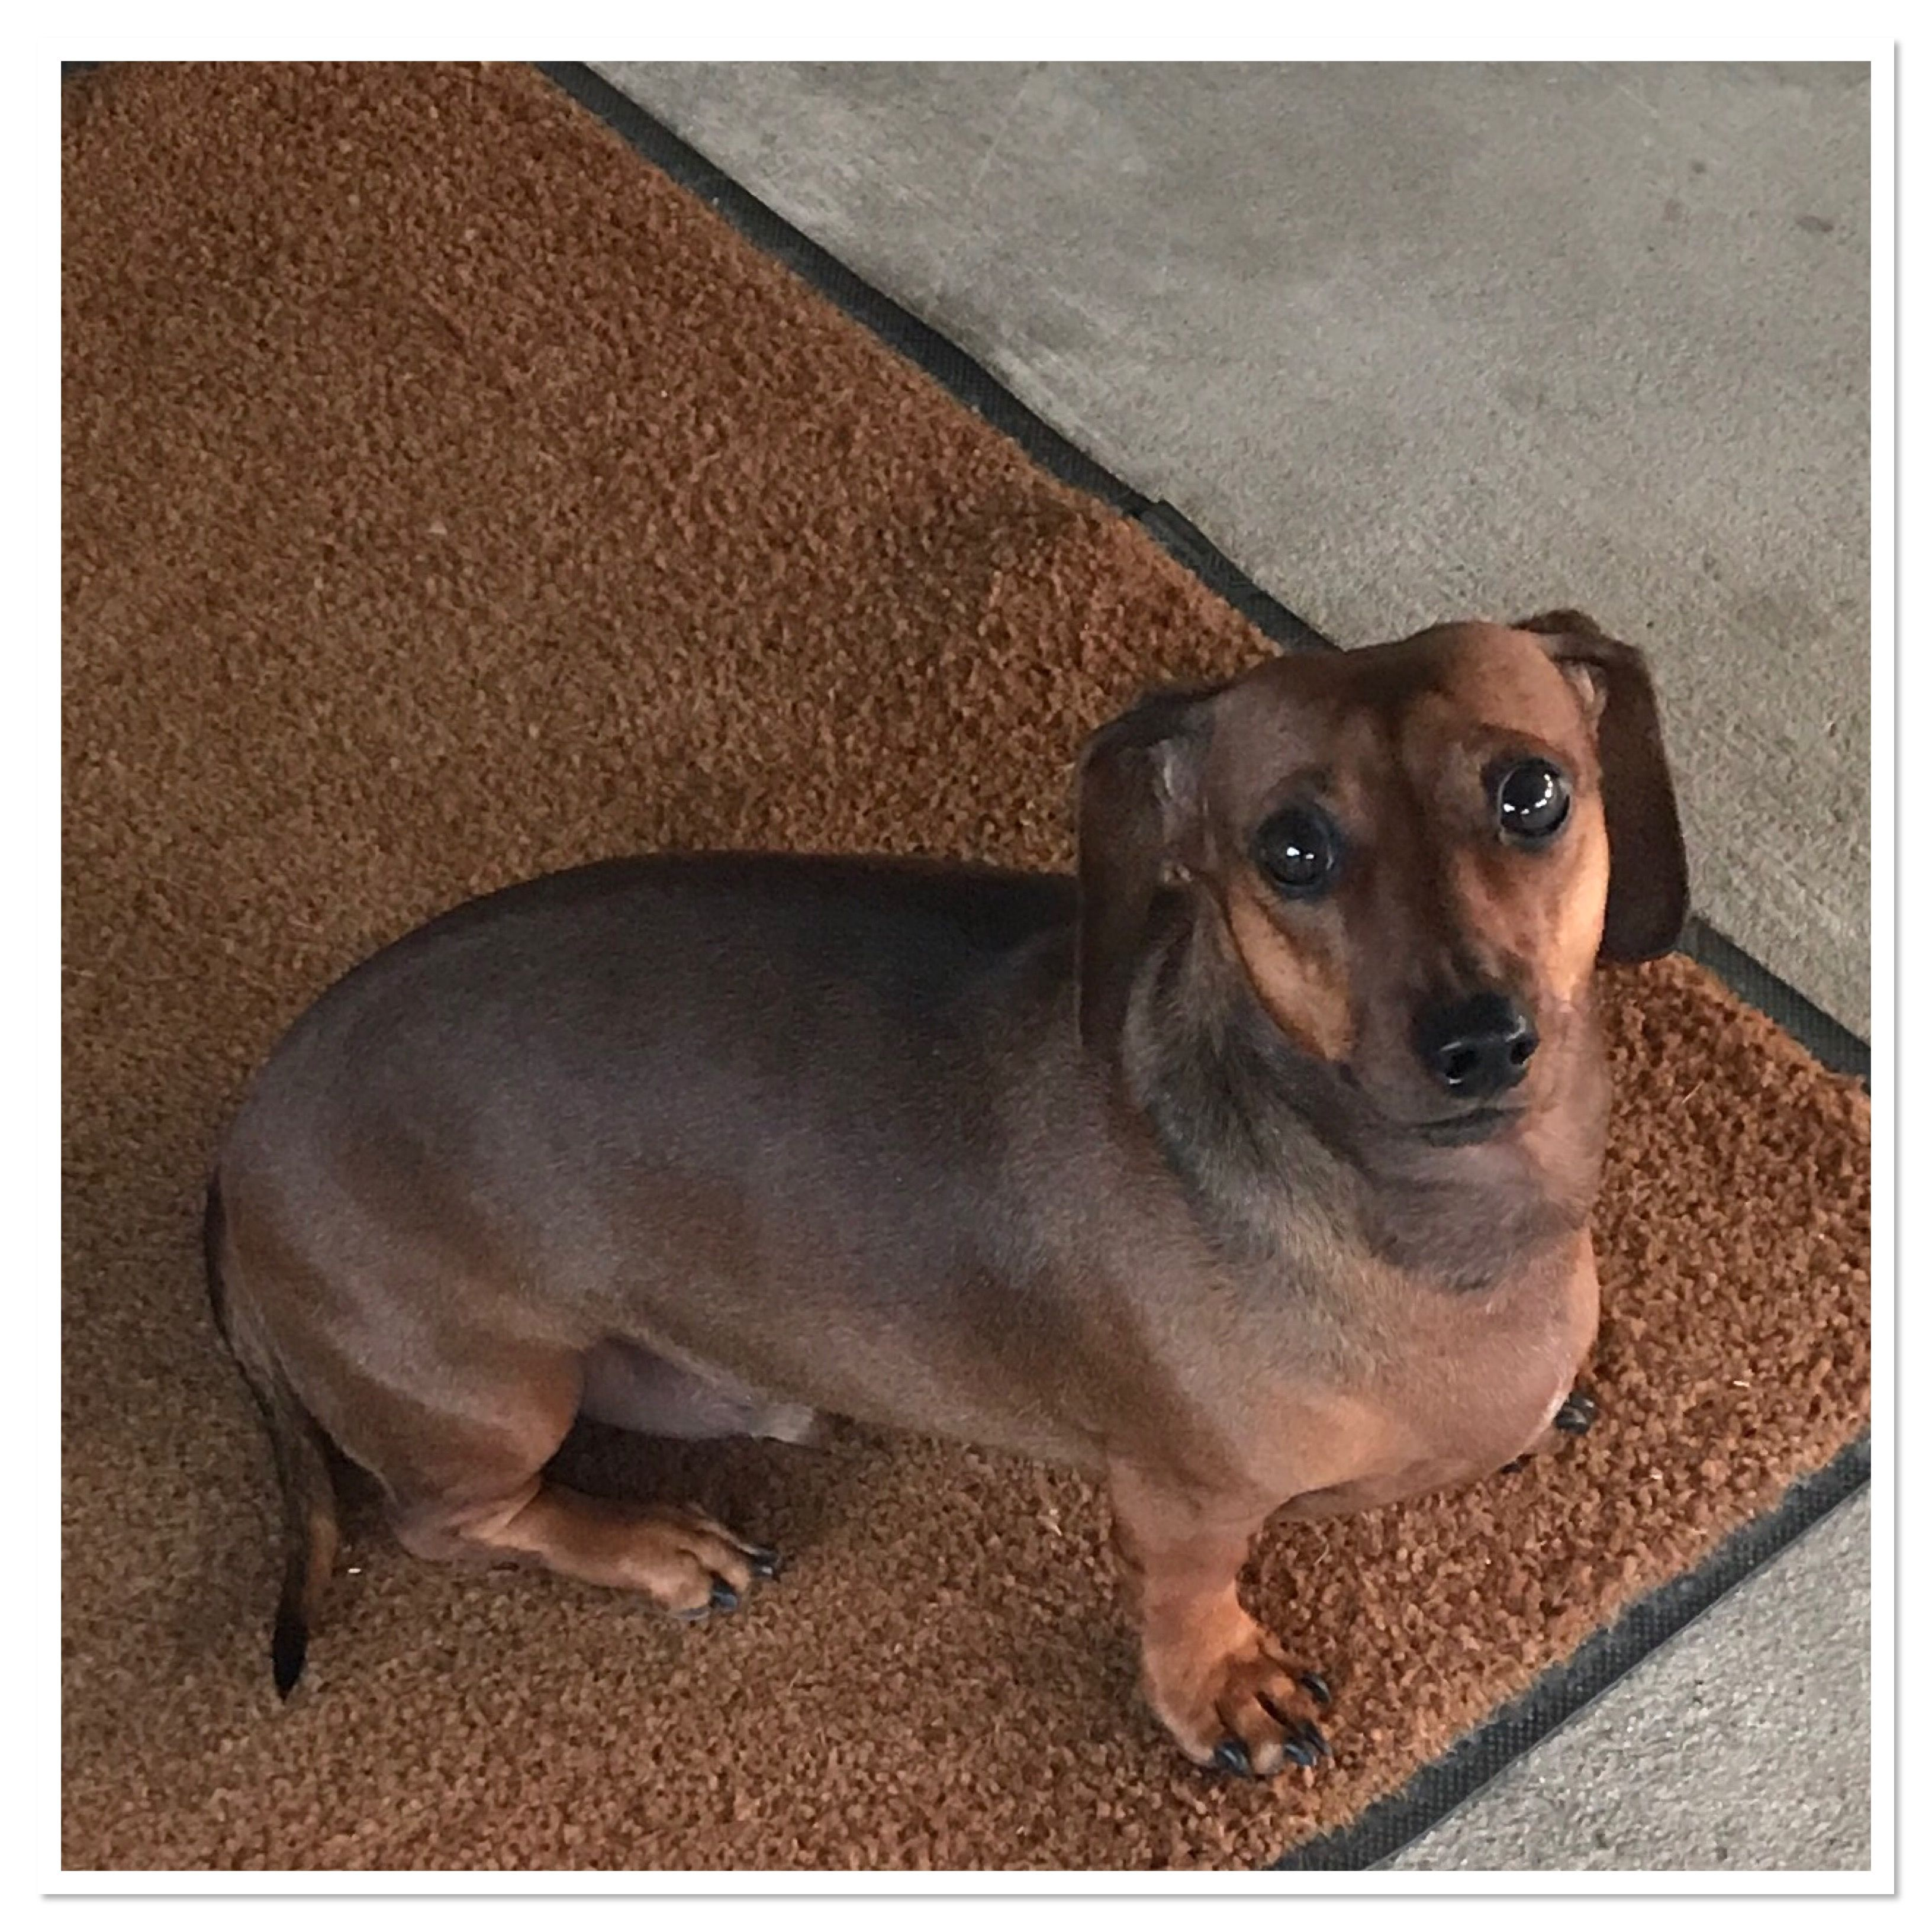 Pin By Lisa Fagan On Weiner Dogs Dachshund Dogs Animals